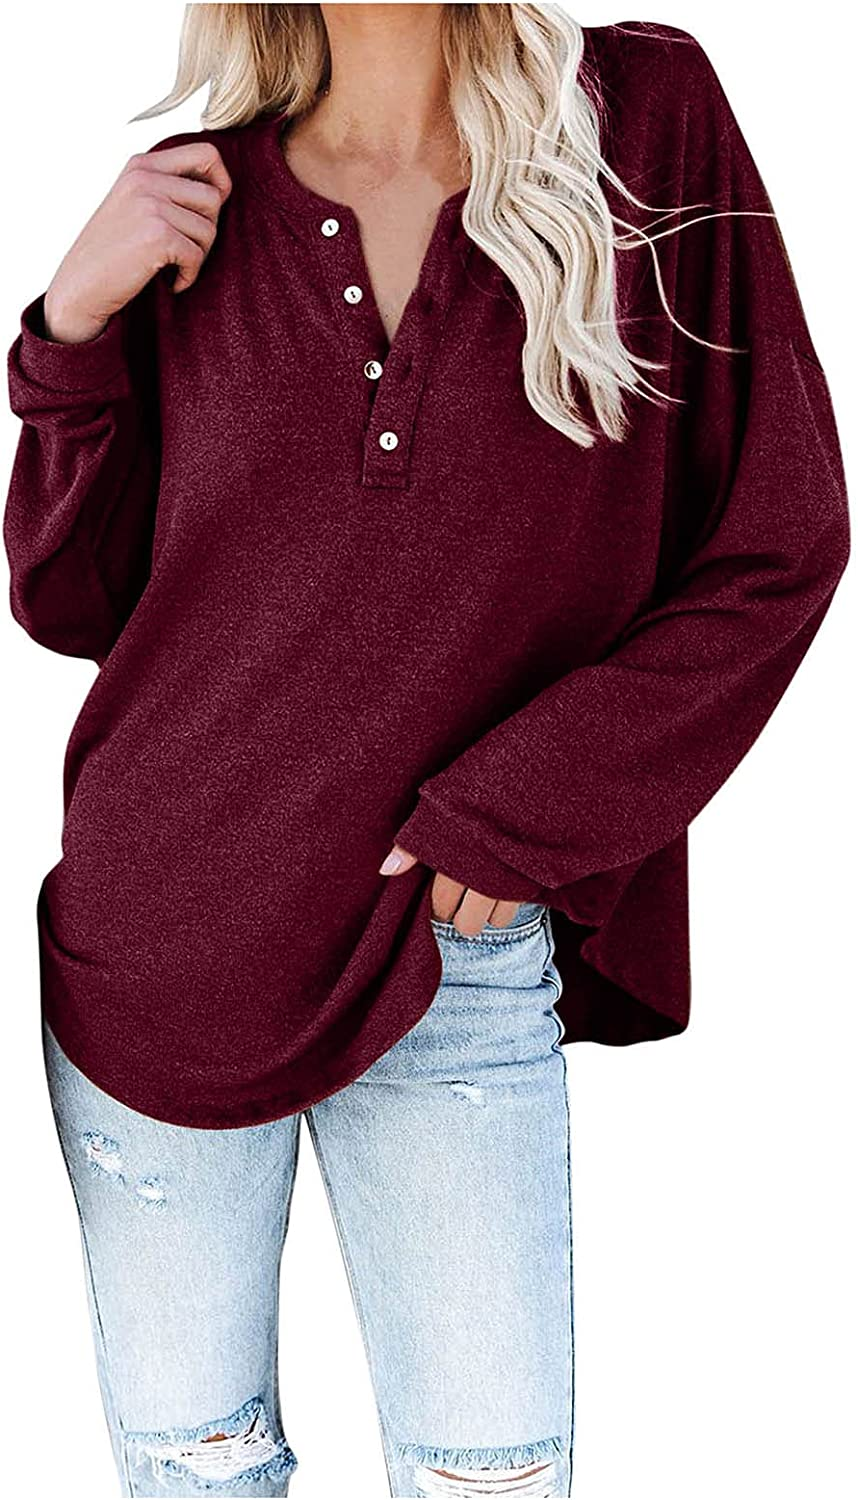 Women's Summer Solid Color Chicago Mall SEAL limited product Long Sleeve Down Shirts Neck V Button